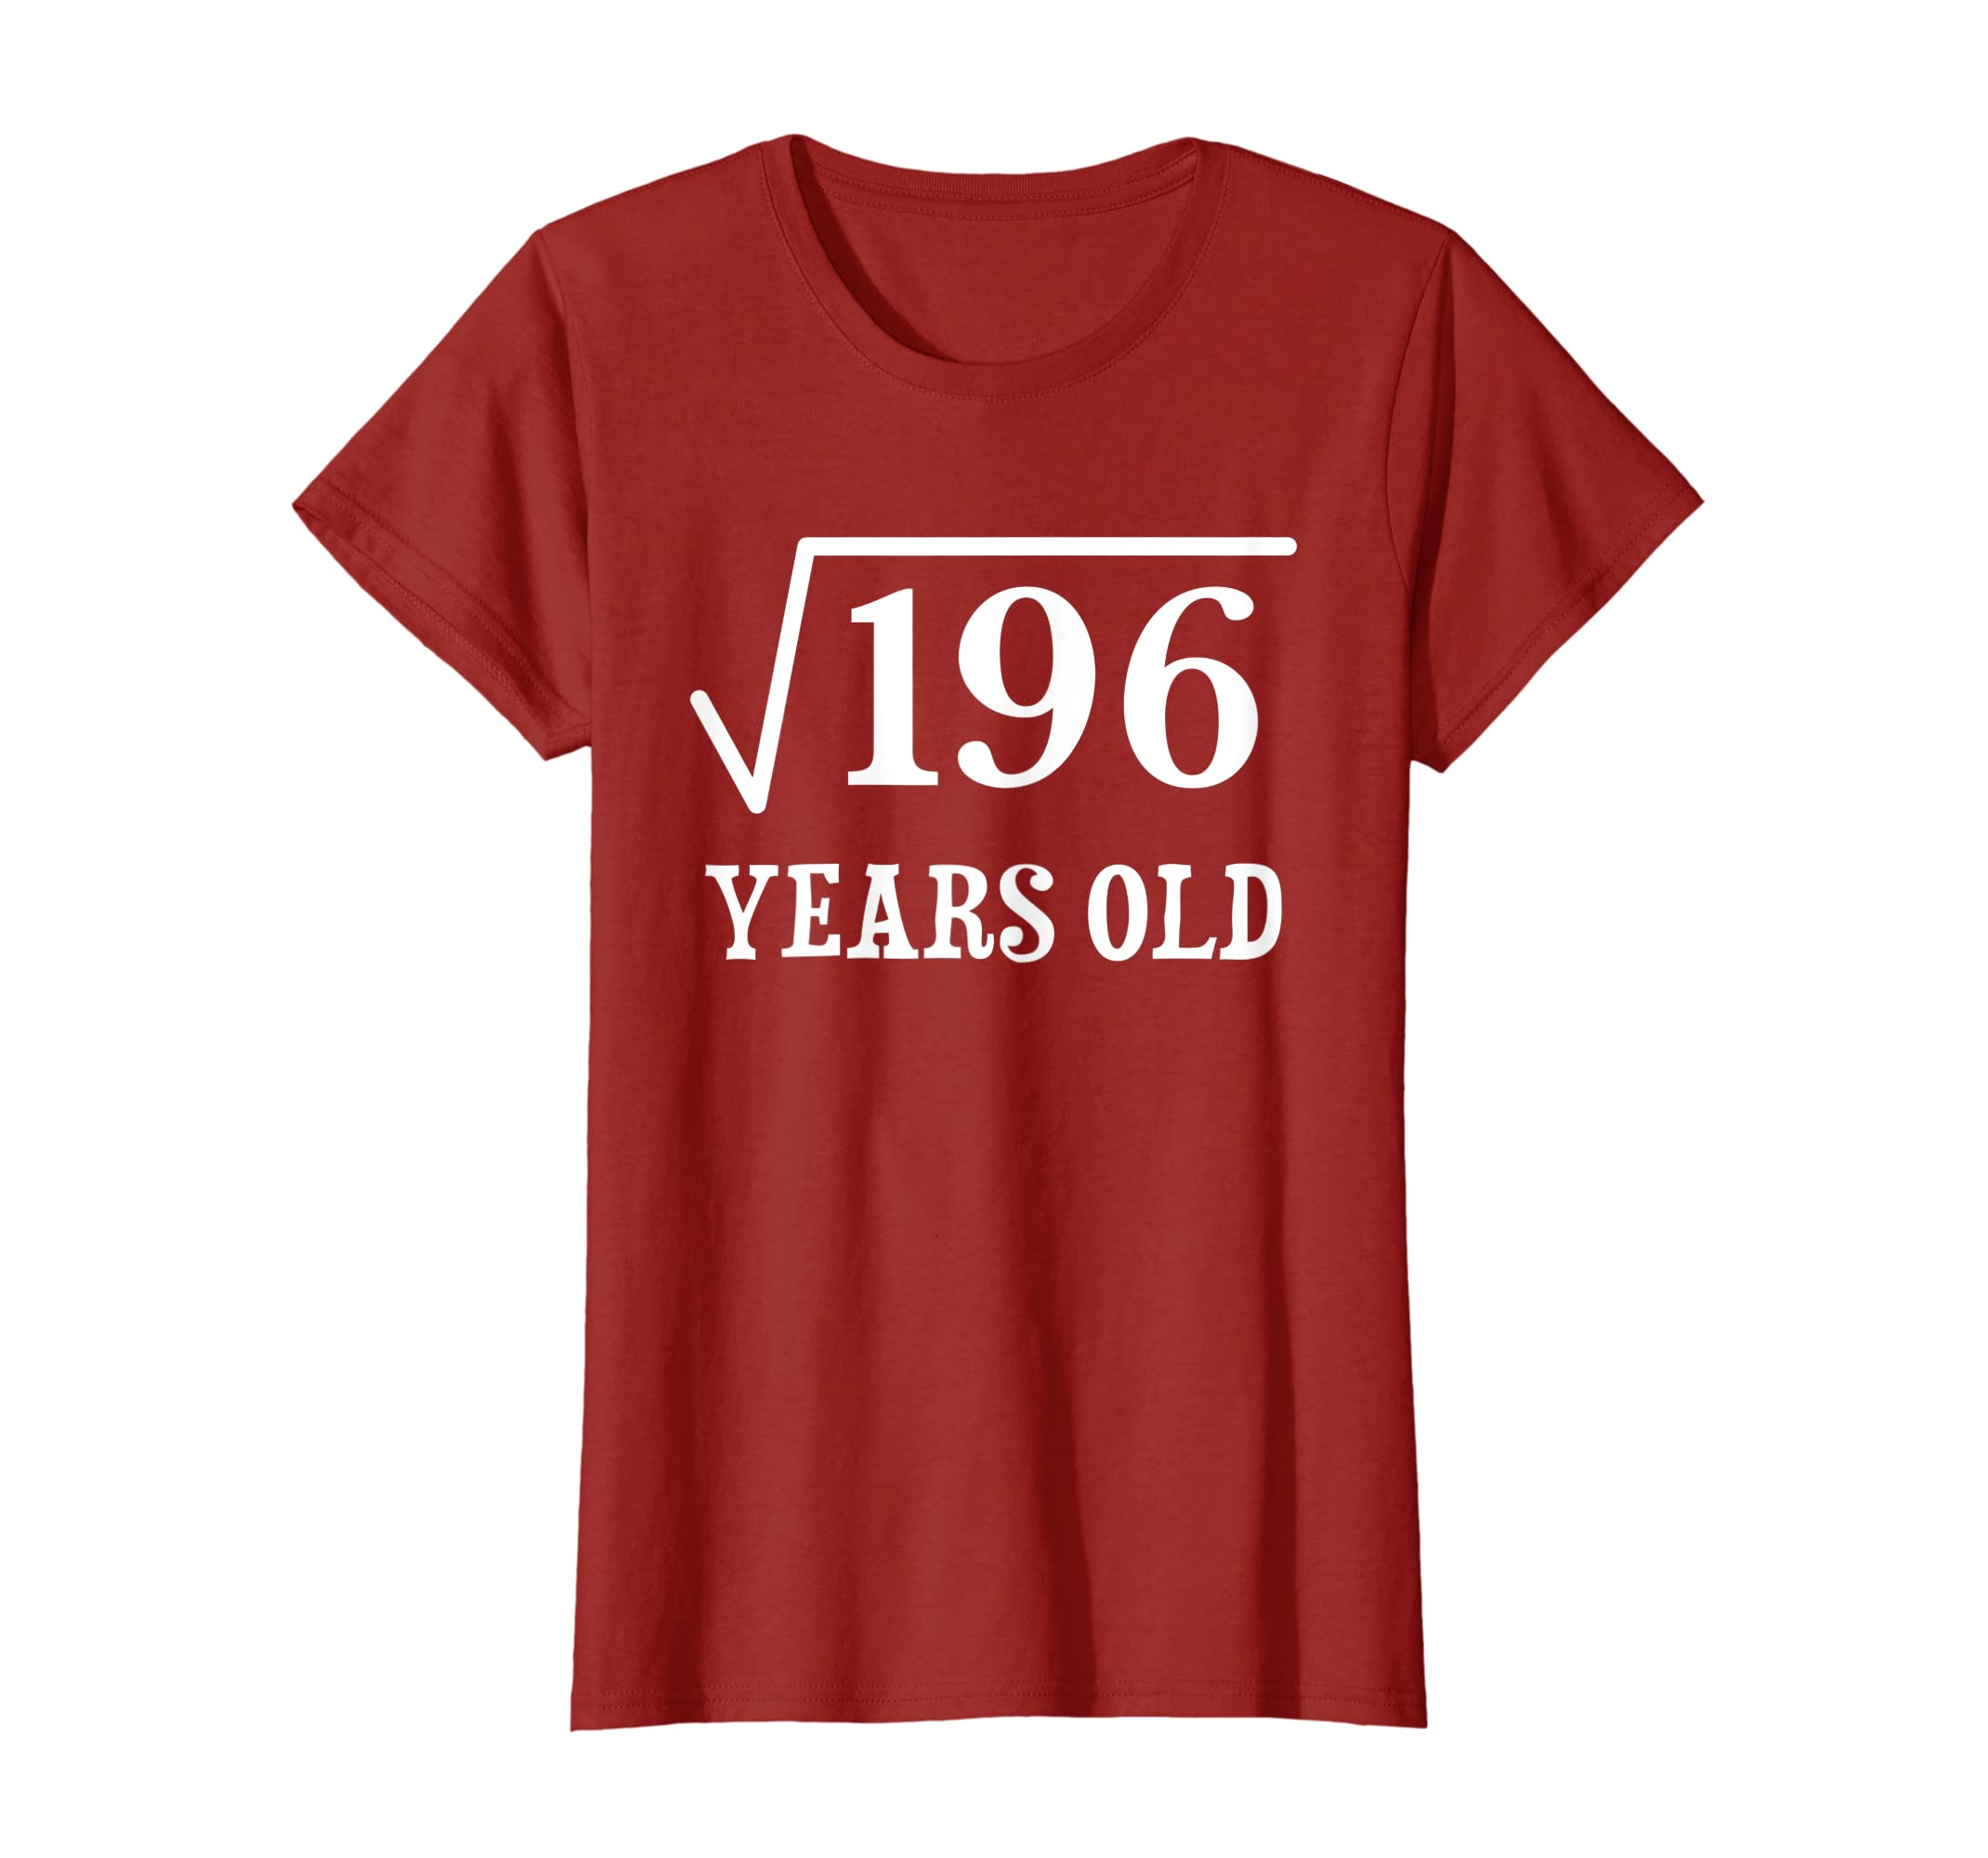 7dc826120 Amazon.com: Square Root of 196 14 yrs years old 14th birthday T-Shirt:  Clothing